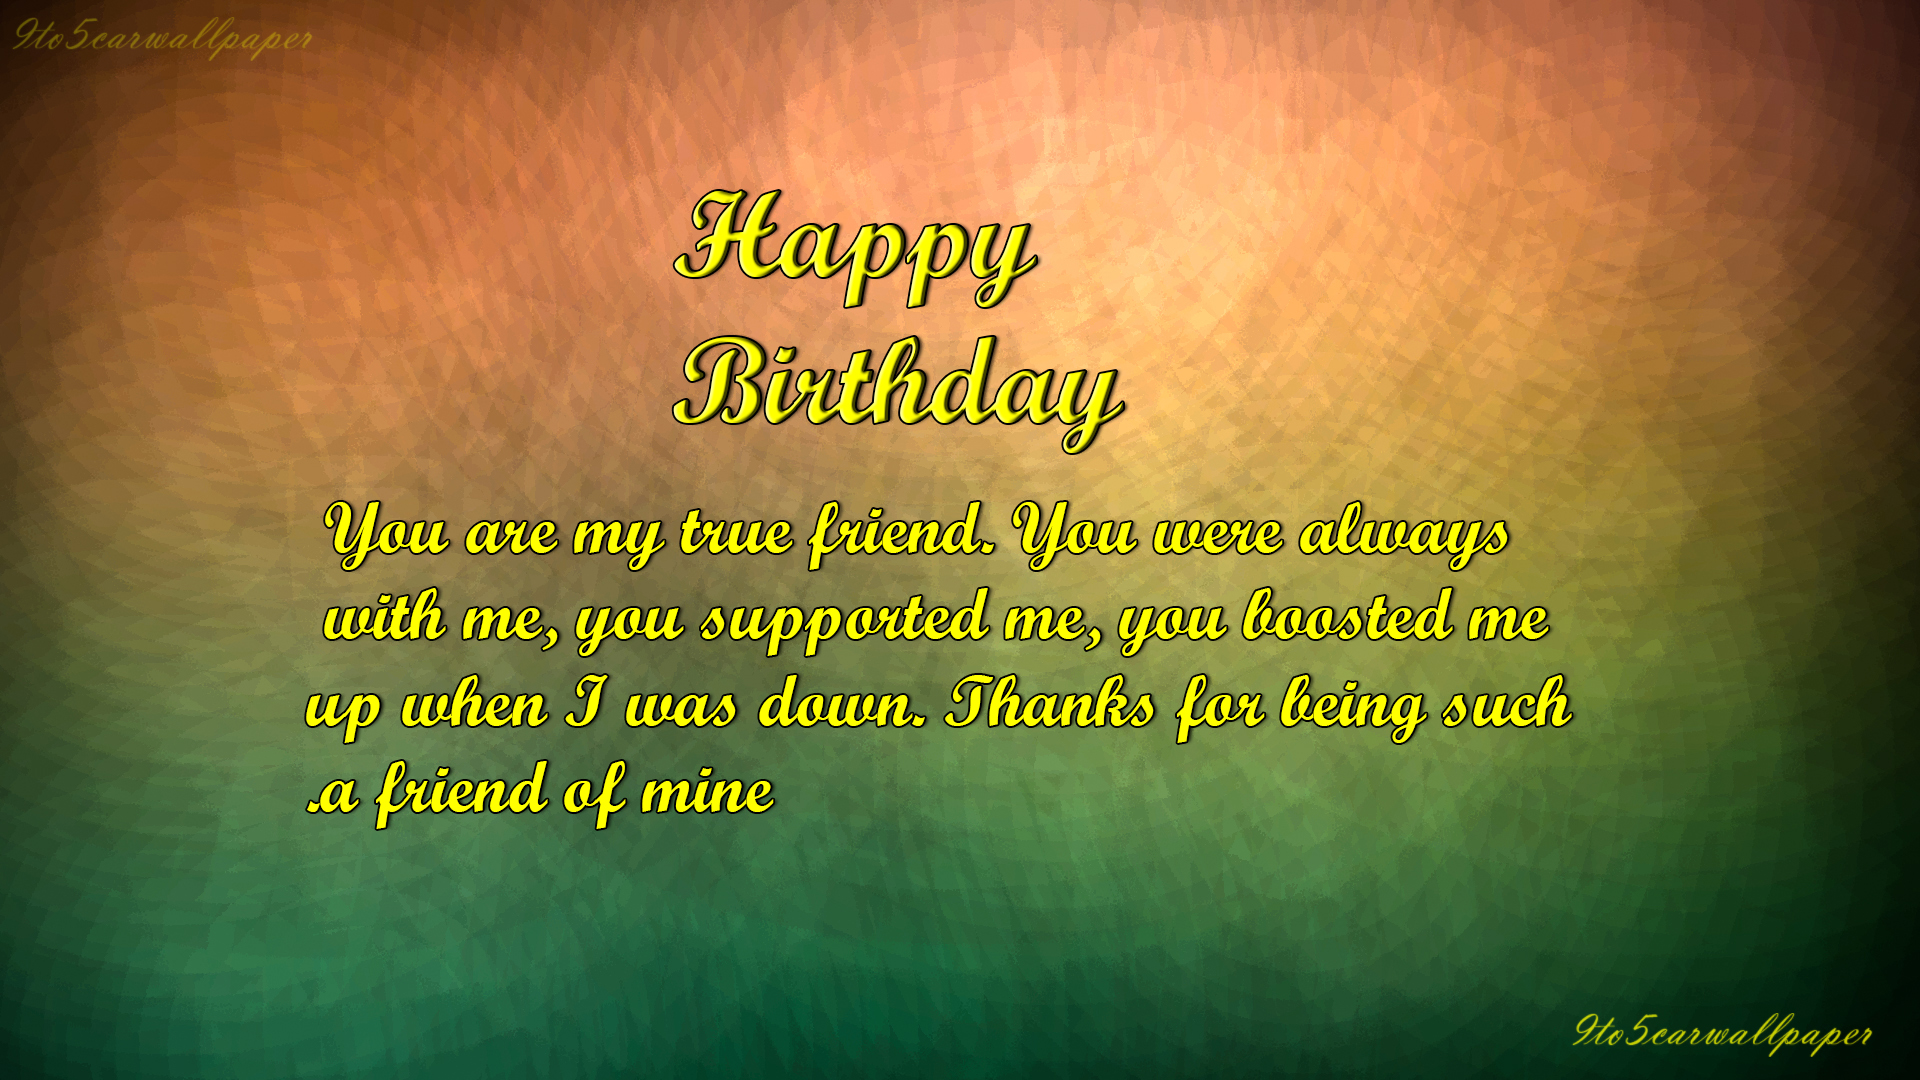 Happy Birthday Quotes Hd Images ~ Cool happy birthday wallpapers images&pics